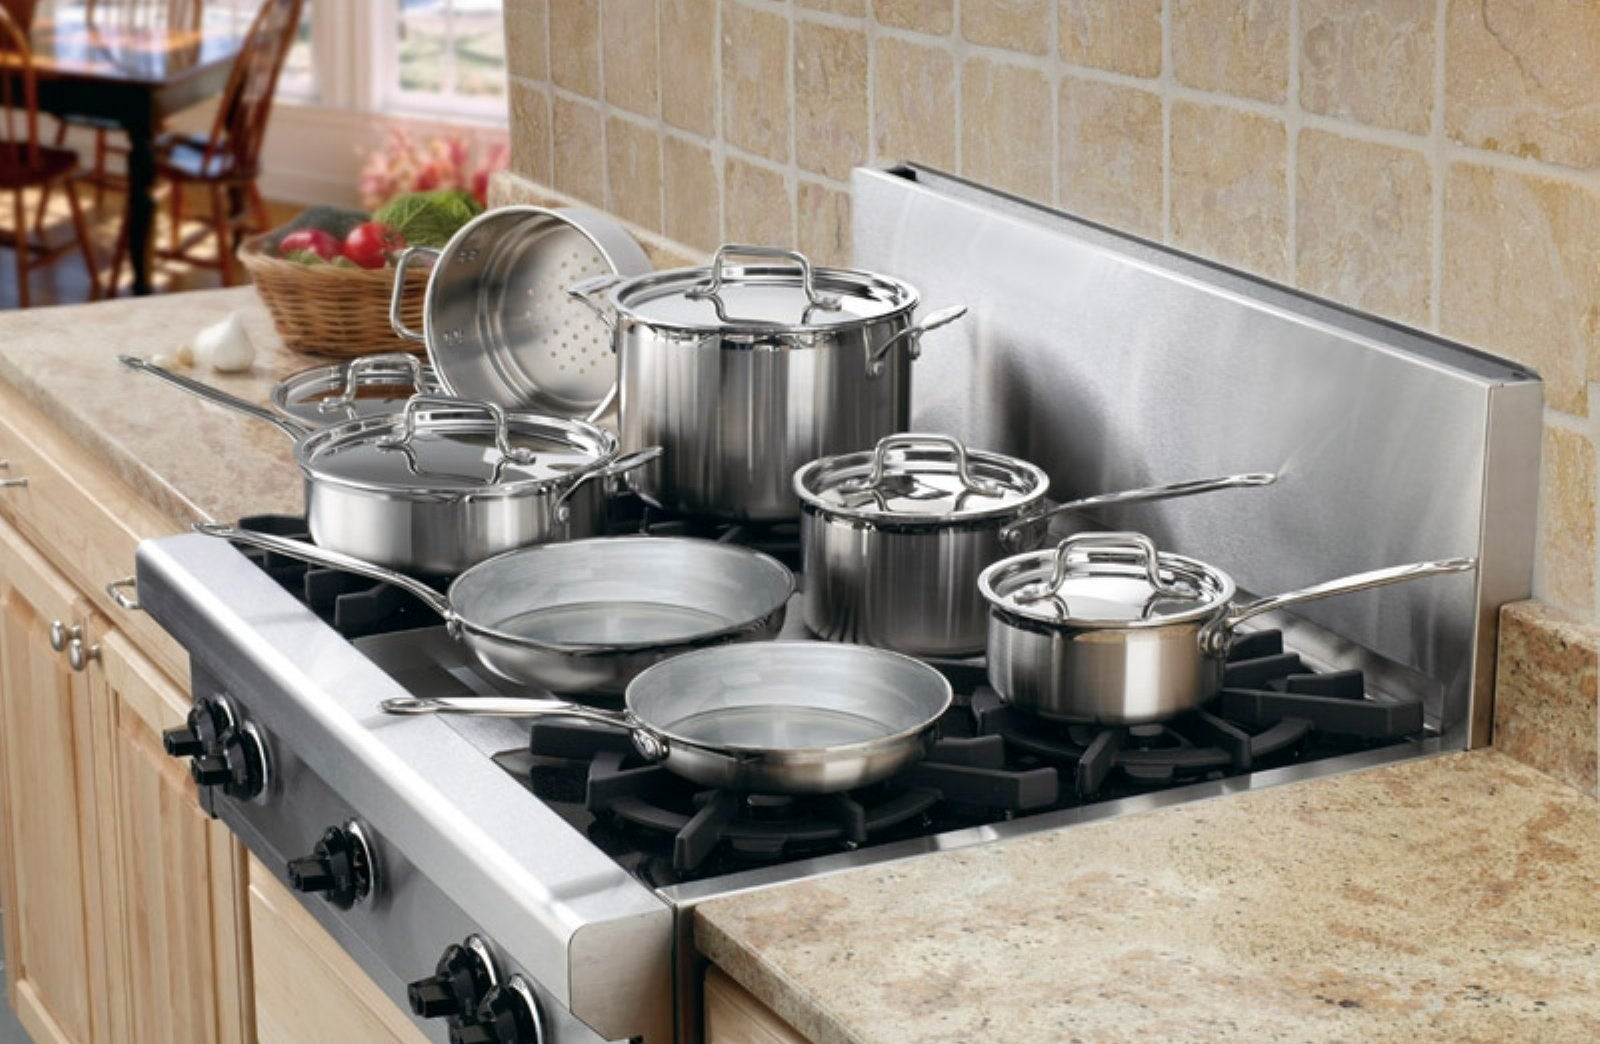 the cookware set on a stove